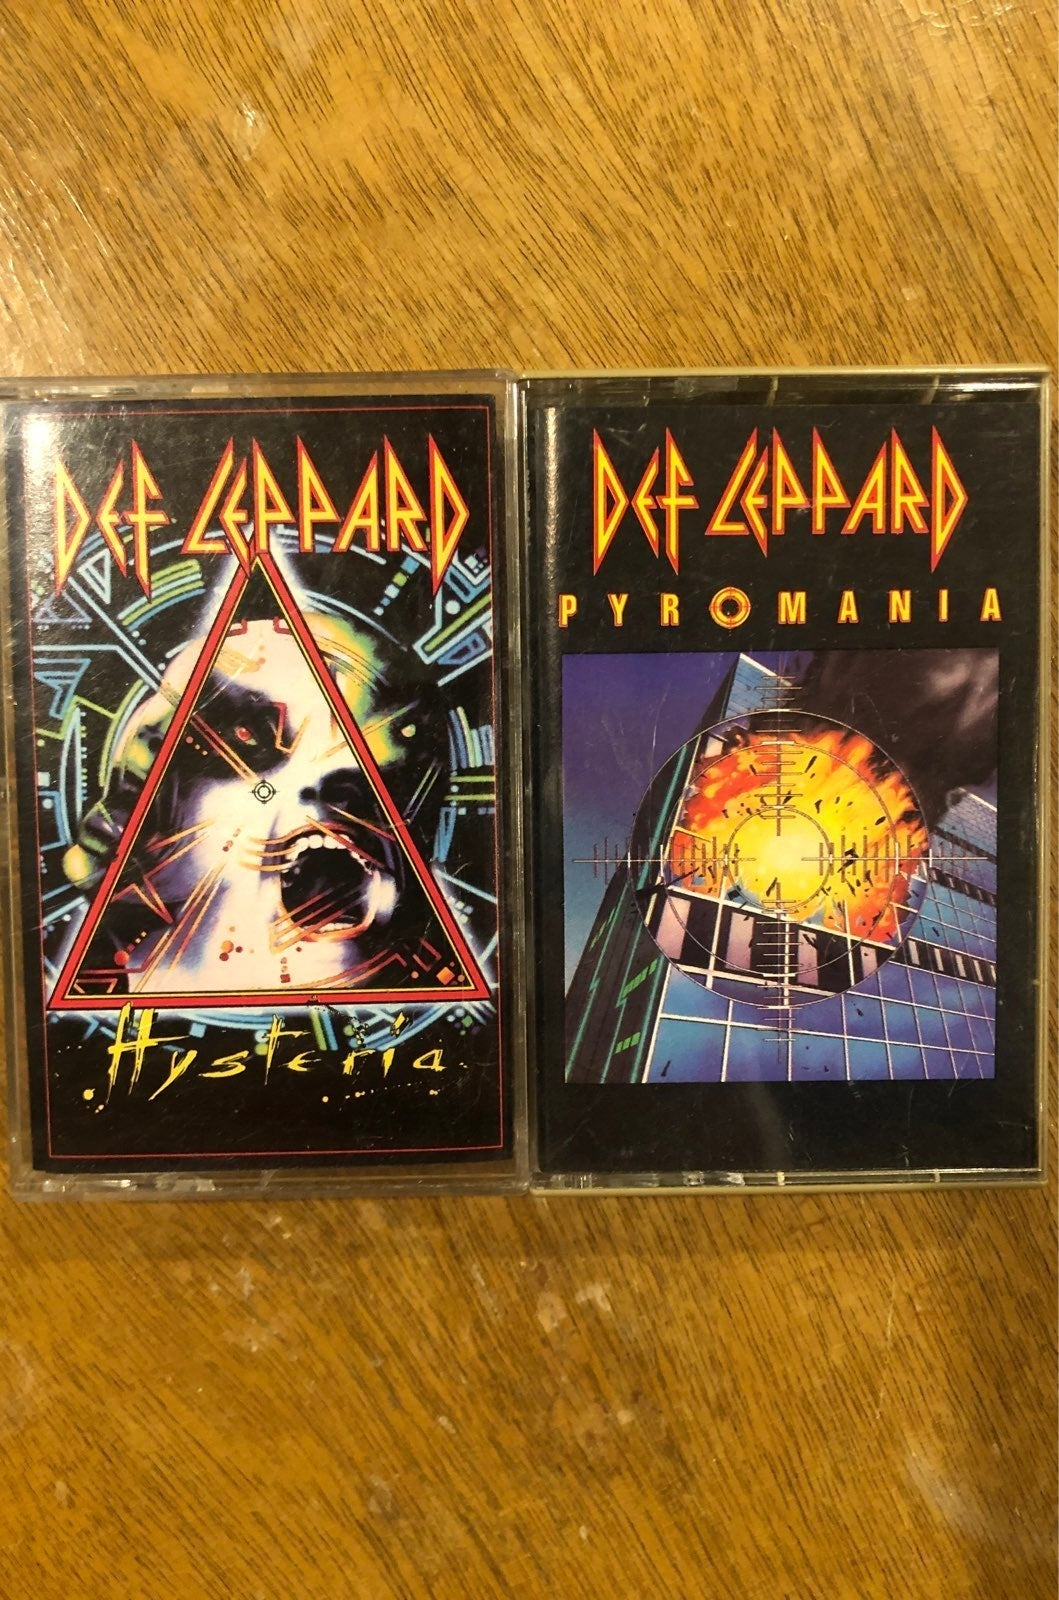 Def Leppard tapes